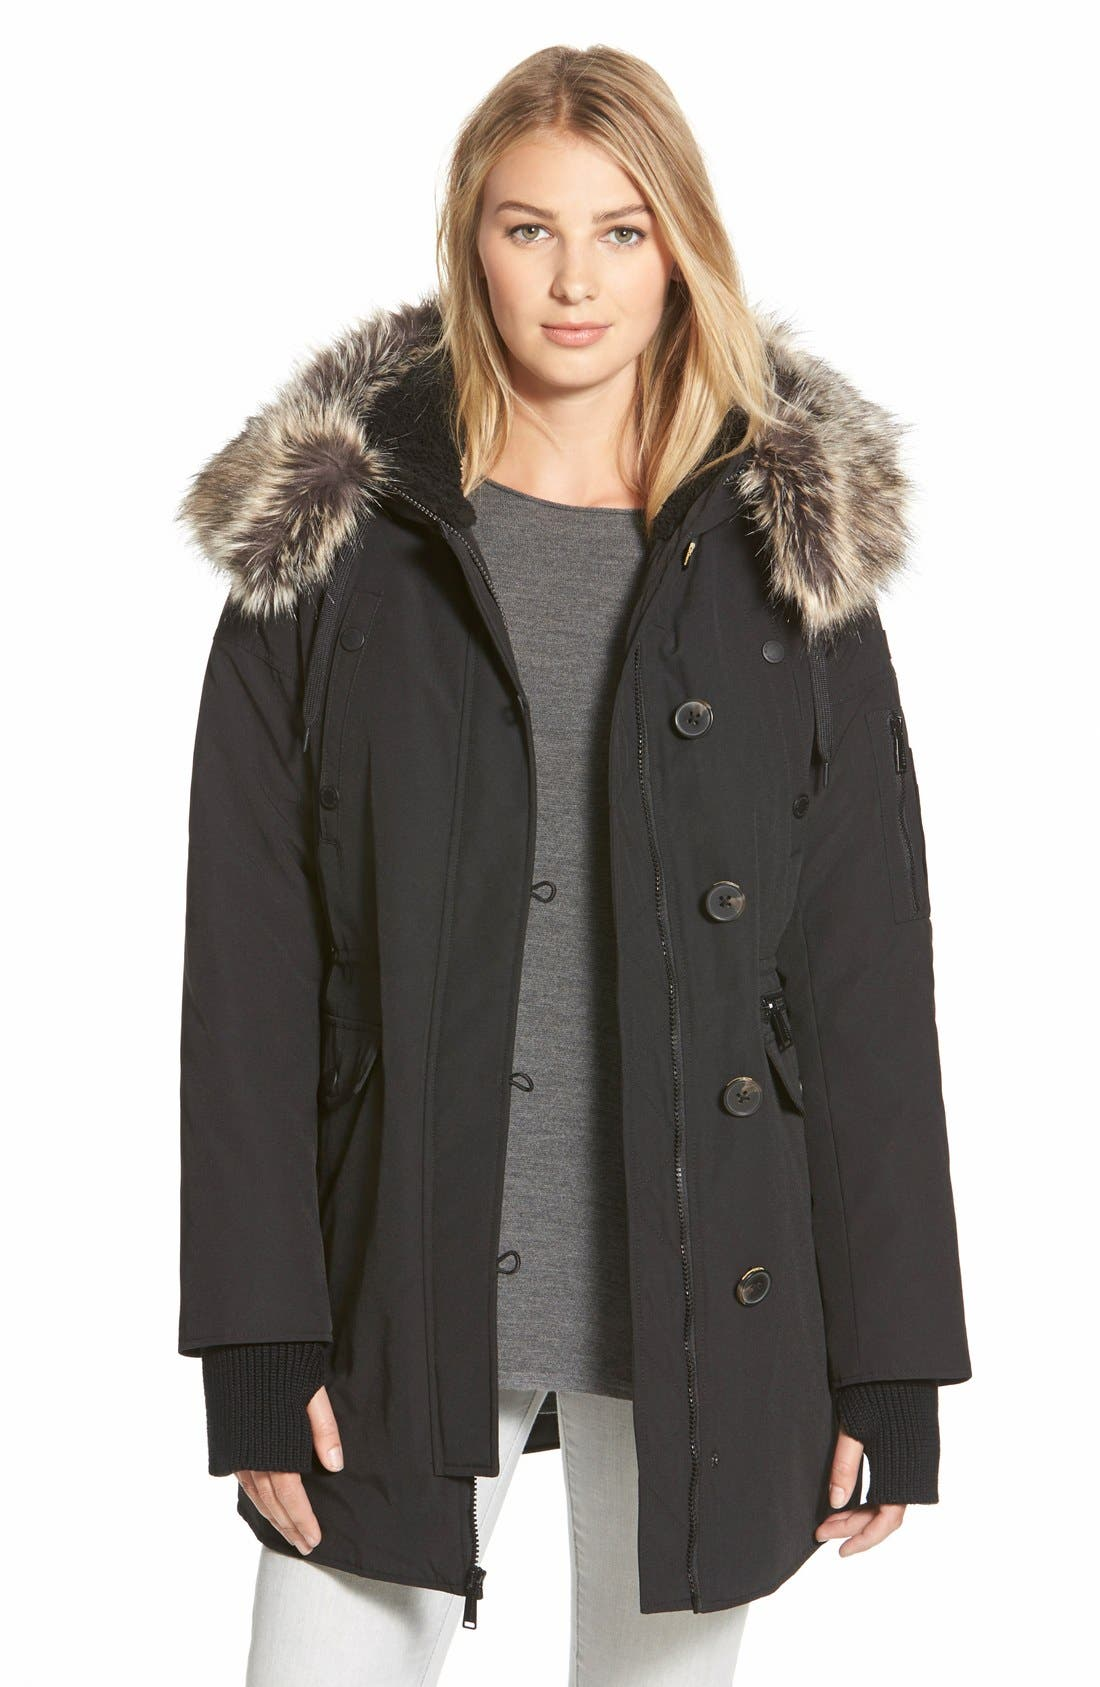 Alternate Image 1 Selected - BCBGeneration'Expedition' FauxFur & FauxShearling Trim Parka